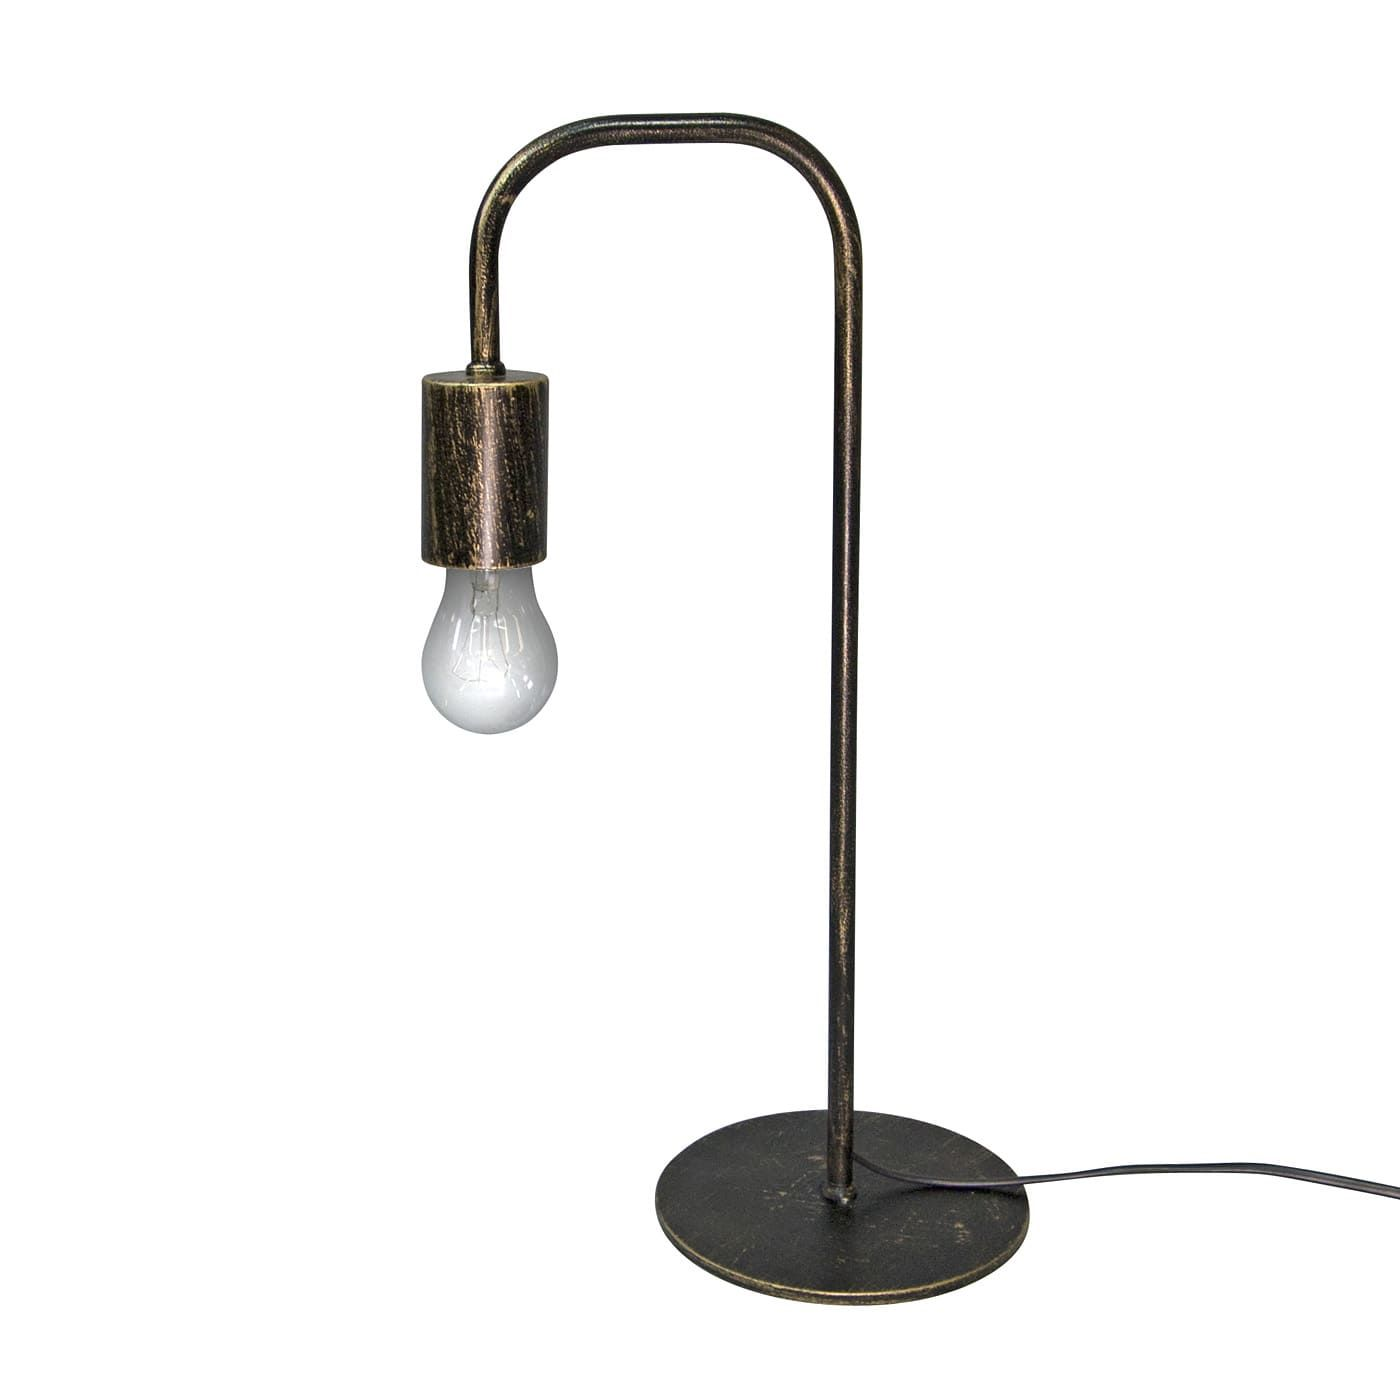 PETRASVET / table lamp S5079-1, 1xE27 max. 60W